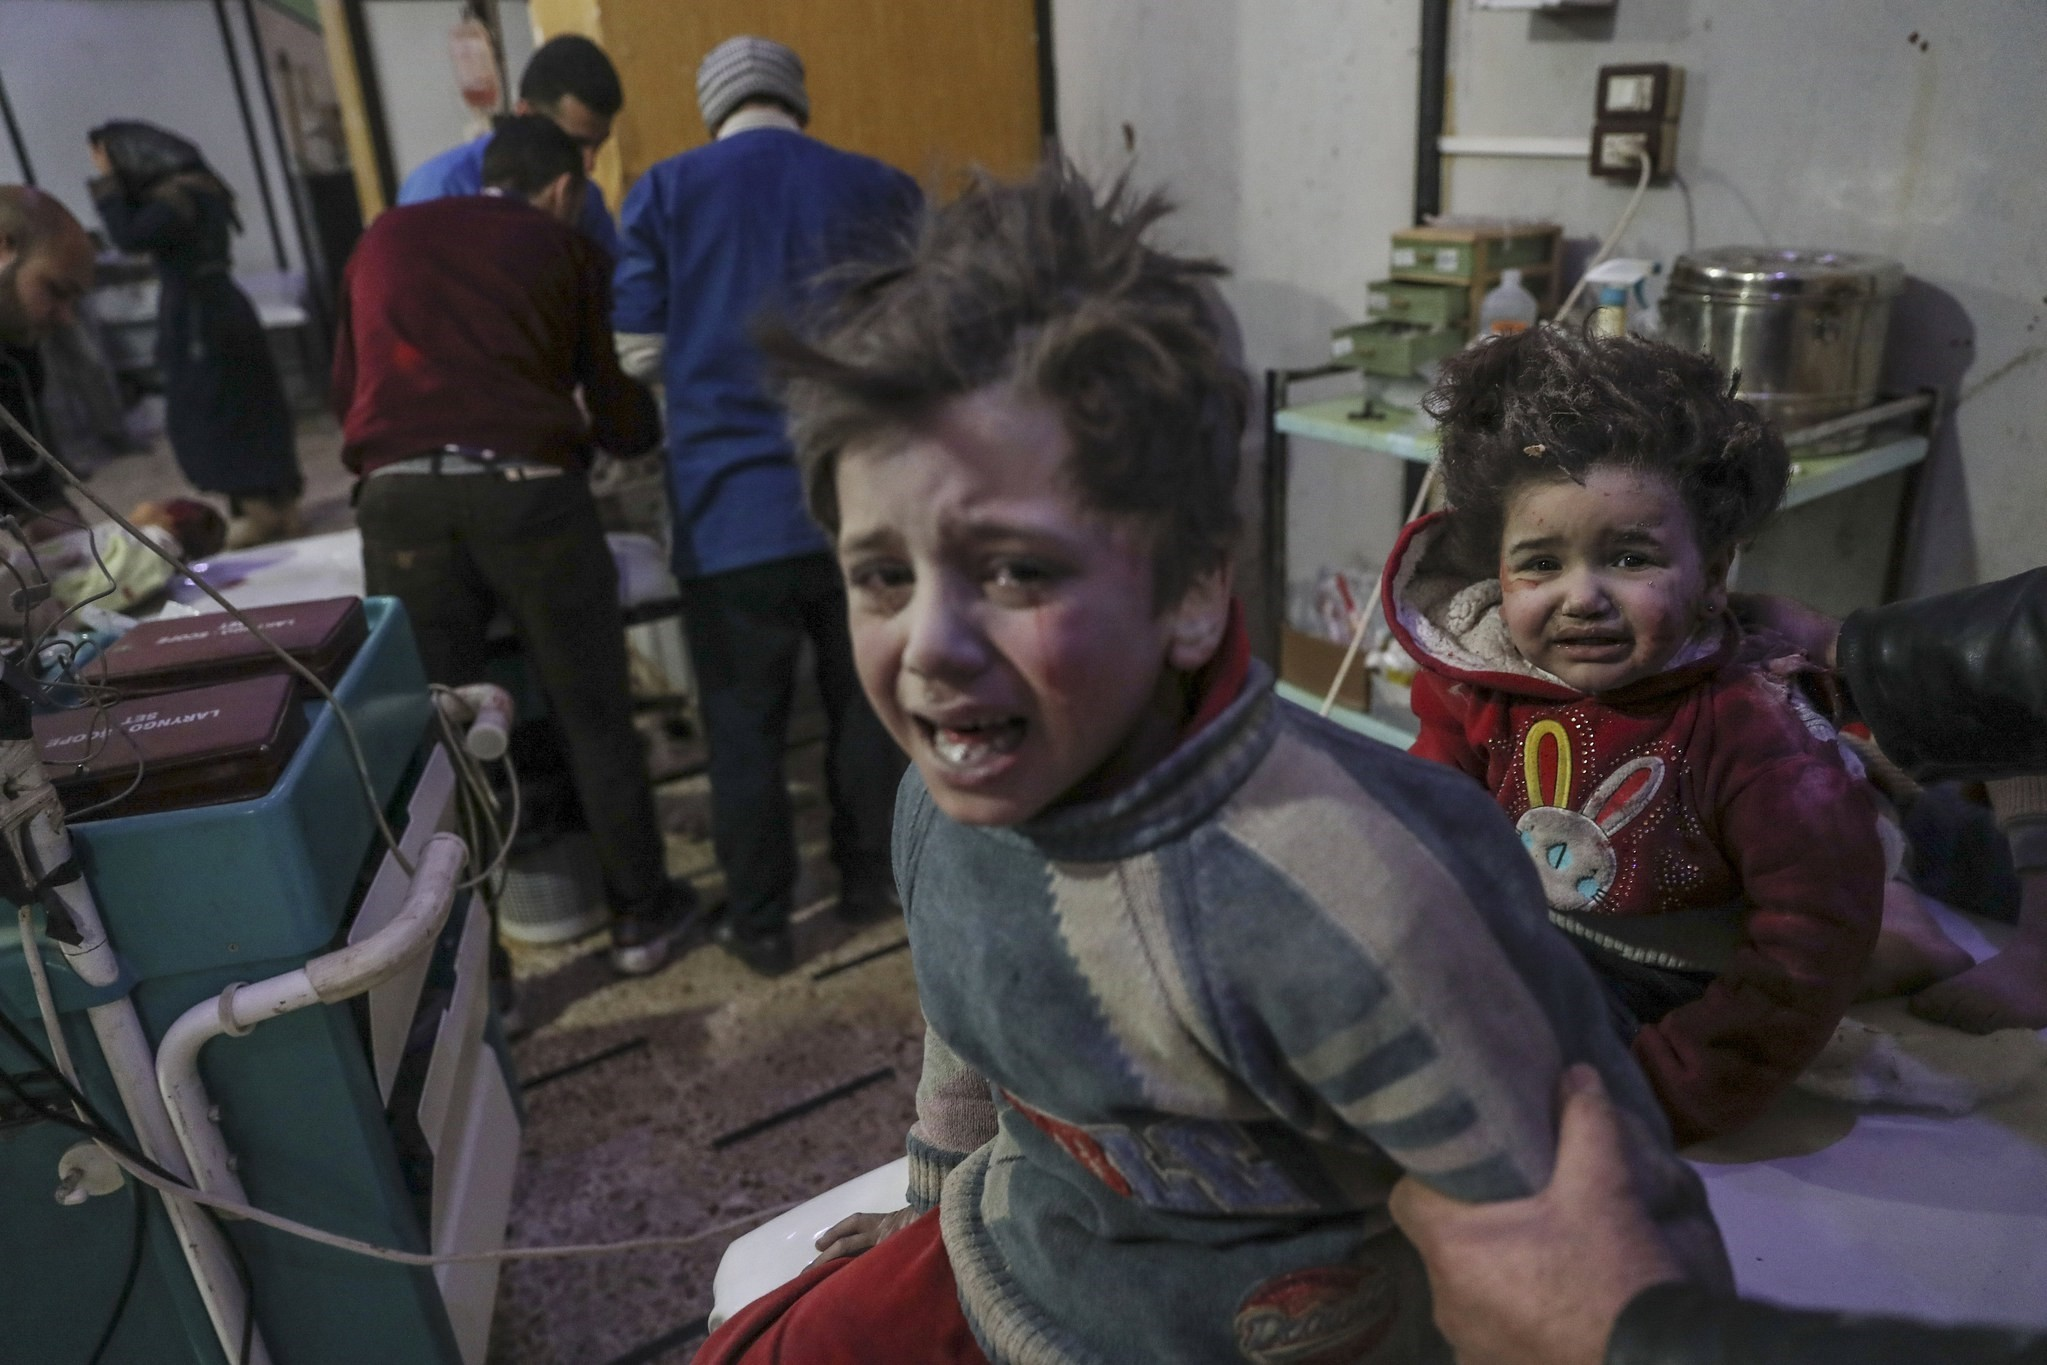 Injured children are treated at a hospital in opposition-held Douma, Eastern Ghouta, Syria, February 19, 2018. (EPAPhoto)